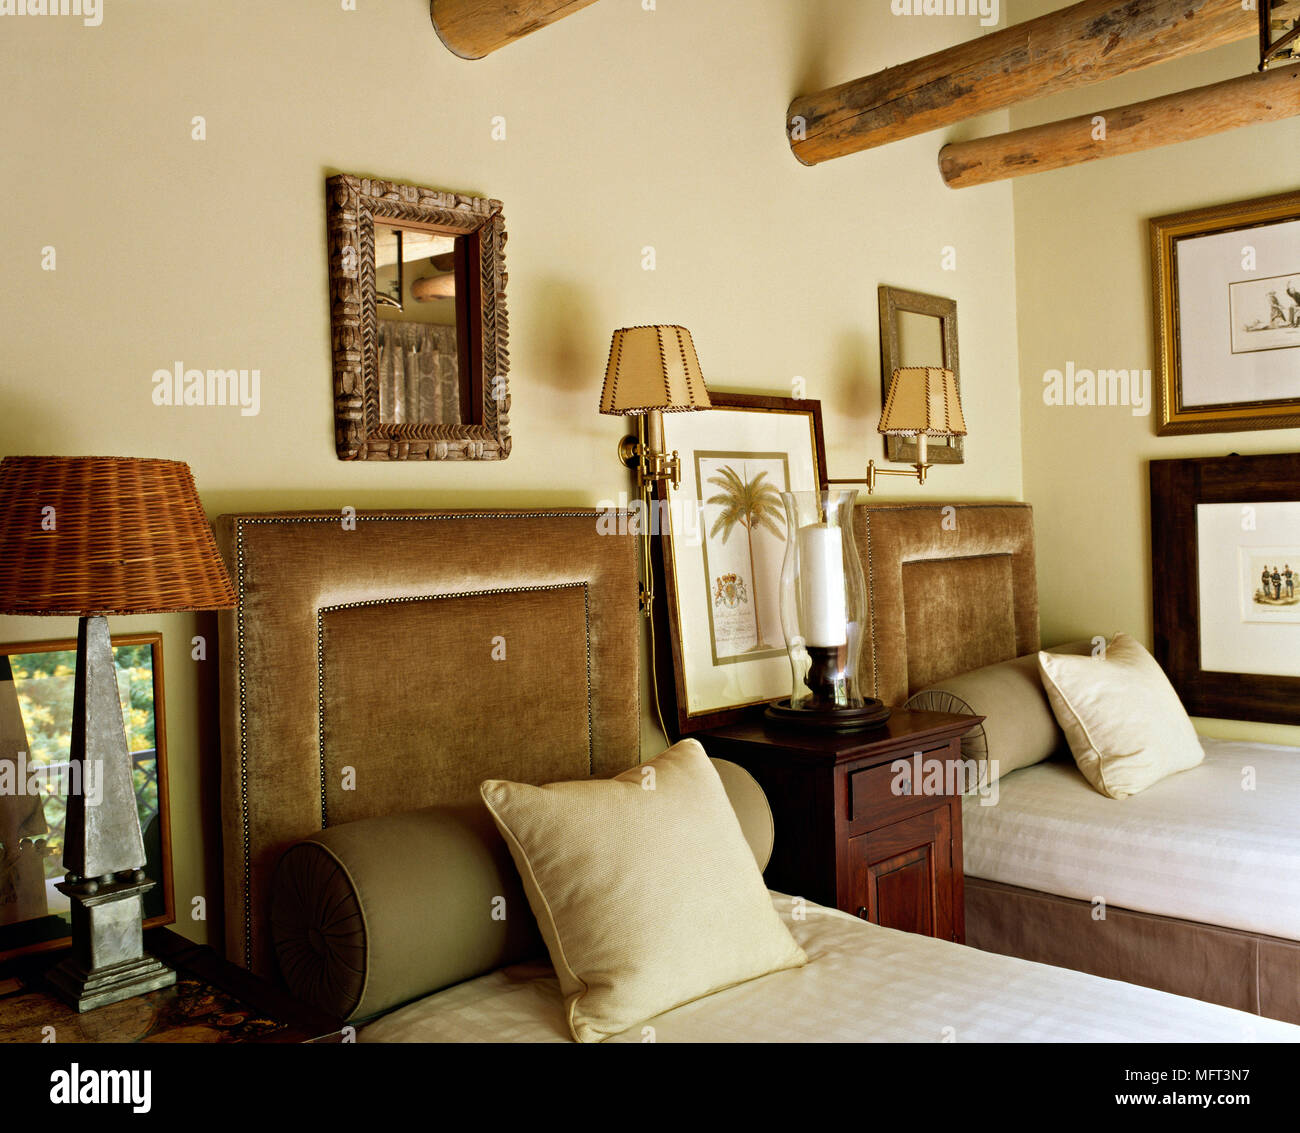 Country Bedroom Twin Single Beds Upholstered Velvet Headboards Bolsters Lamps Interiors Bedrooms Traditional Beds Soft Furnishing Natural Materials Stock Photo Alamy